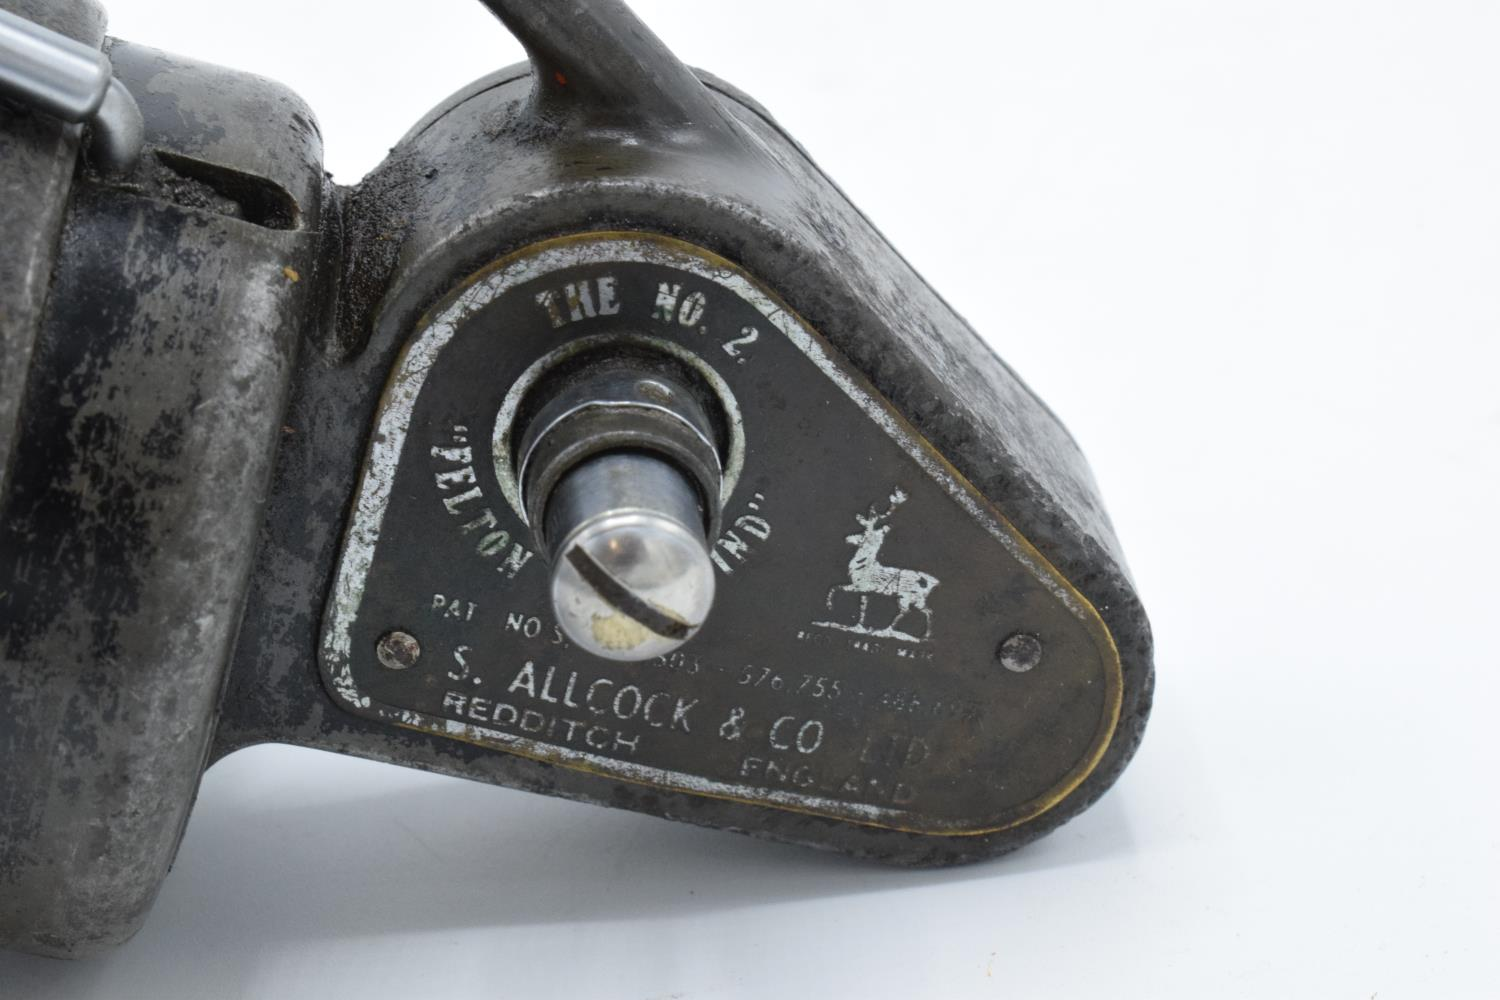 The No. 2 Felton Crosswind fishing reel by S. Allcock and Co Ltd of Redditch. Untested. - Image 6 of 6